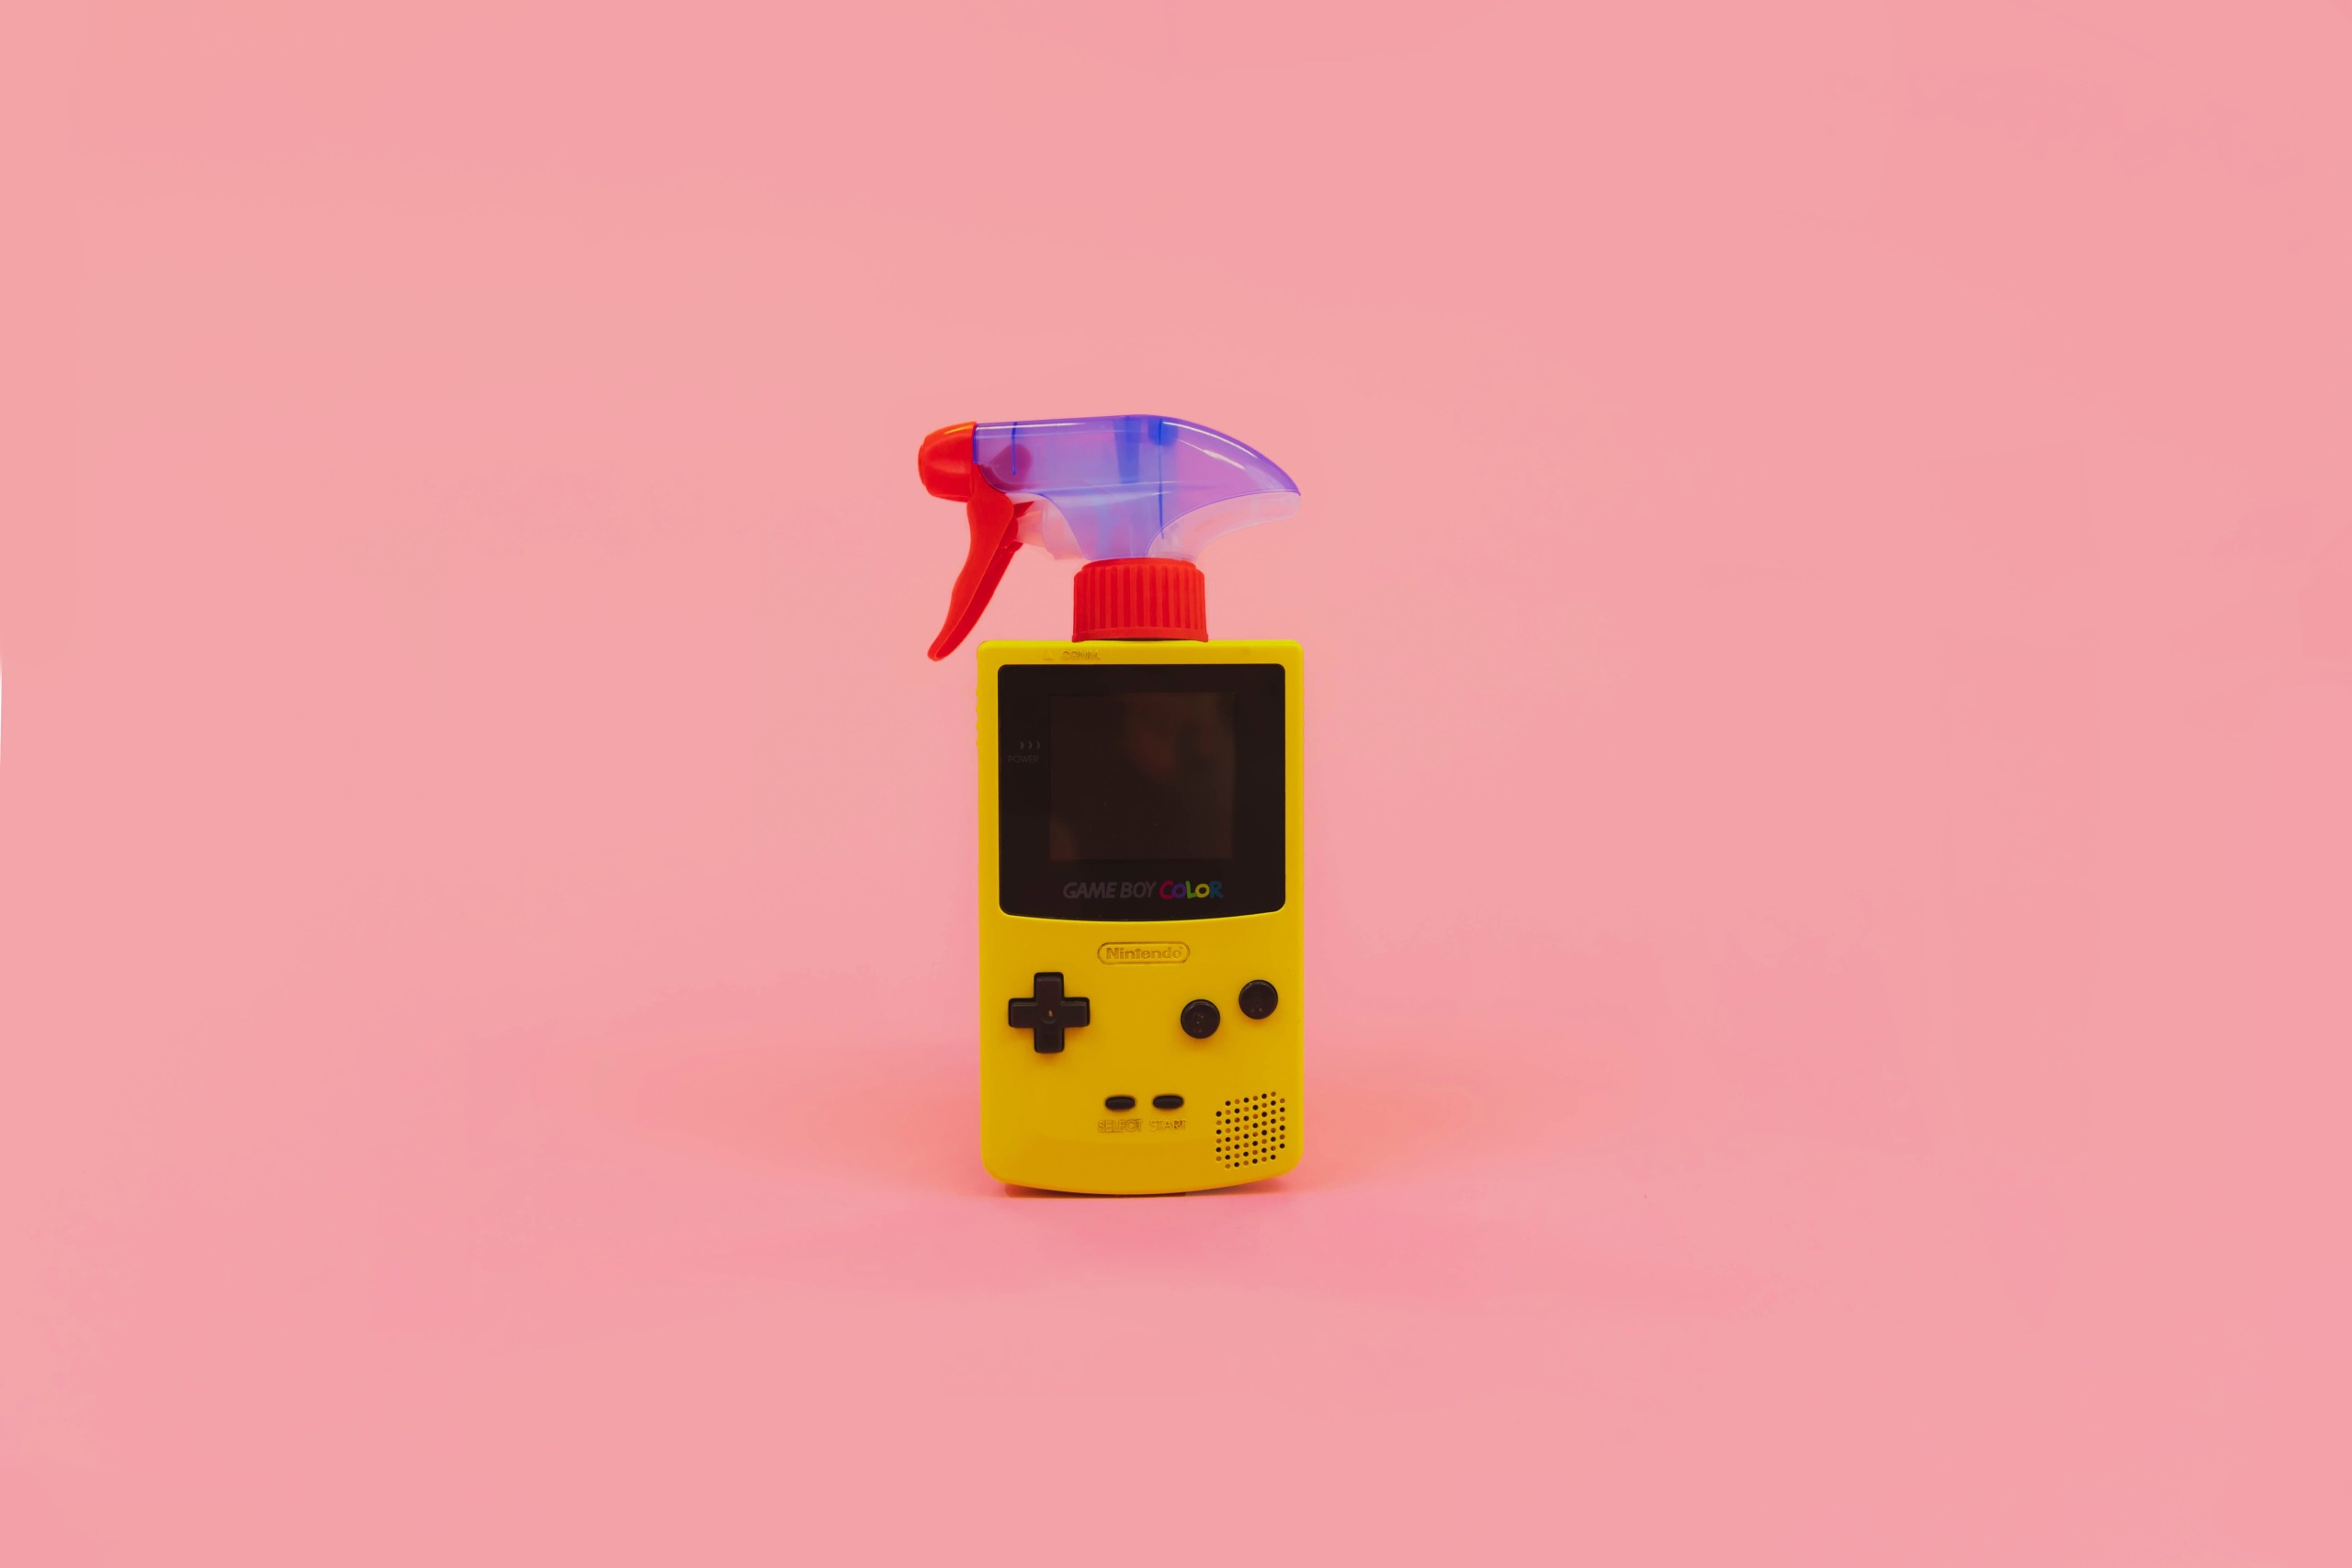 game-boy-yellow-pink-background-cleaning-spray-on-top